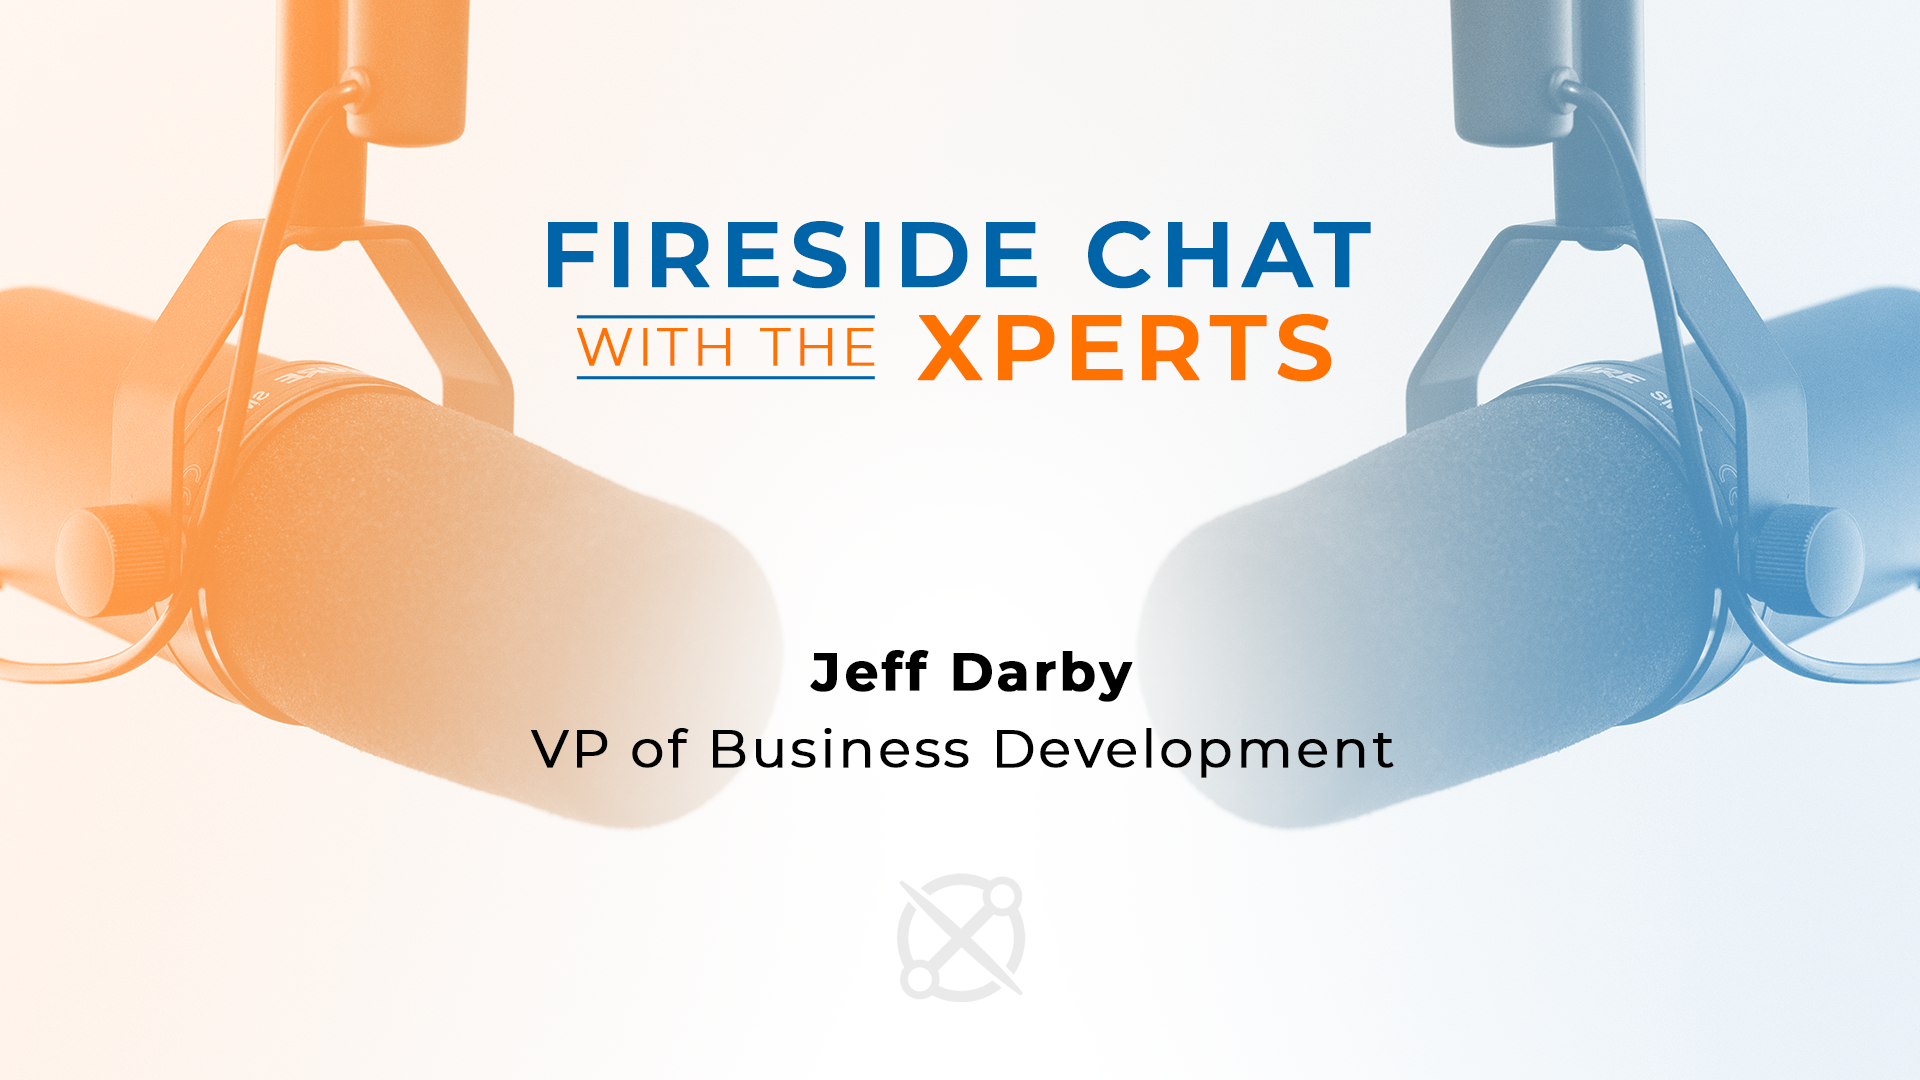 Fireside Chat with the Xperts: NDT with Jeff Darby